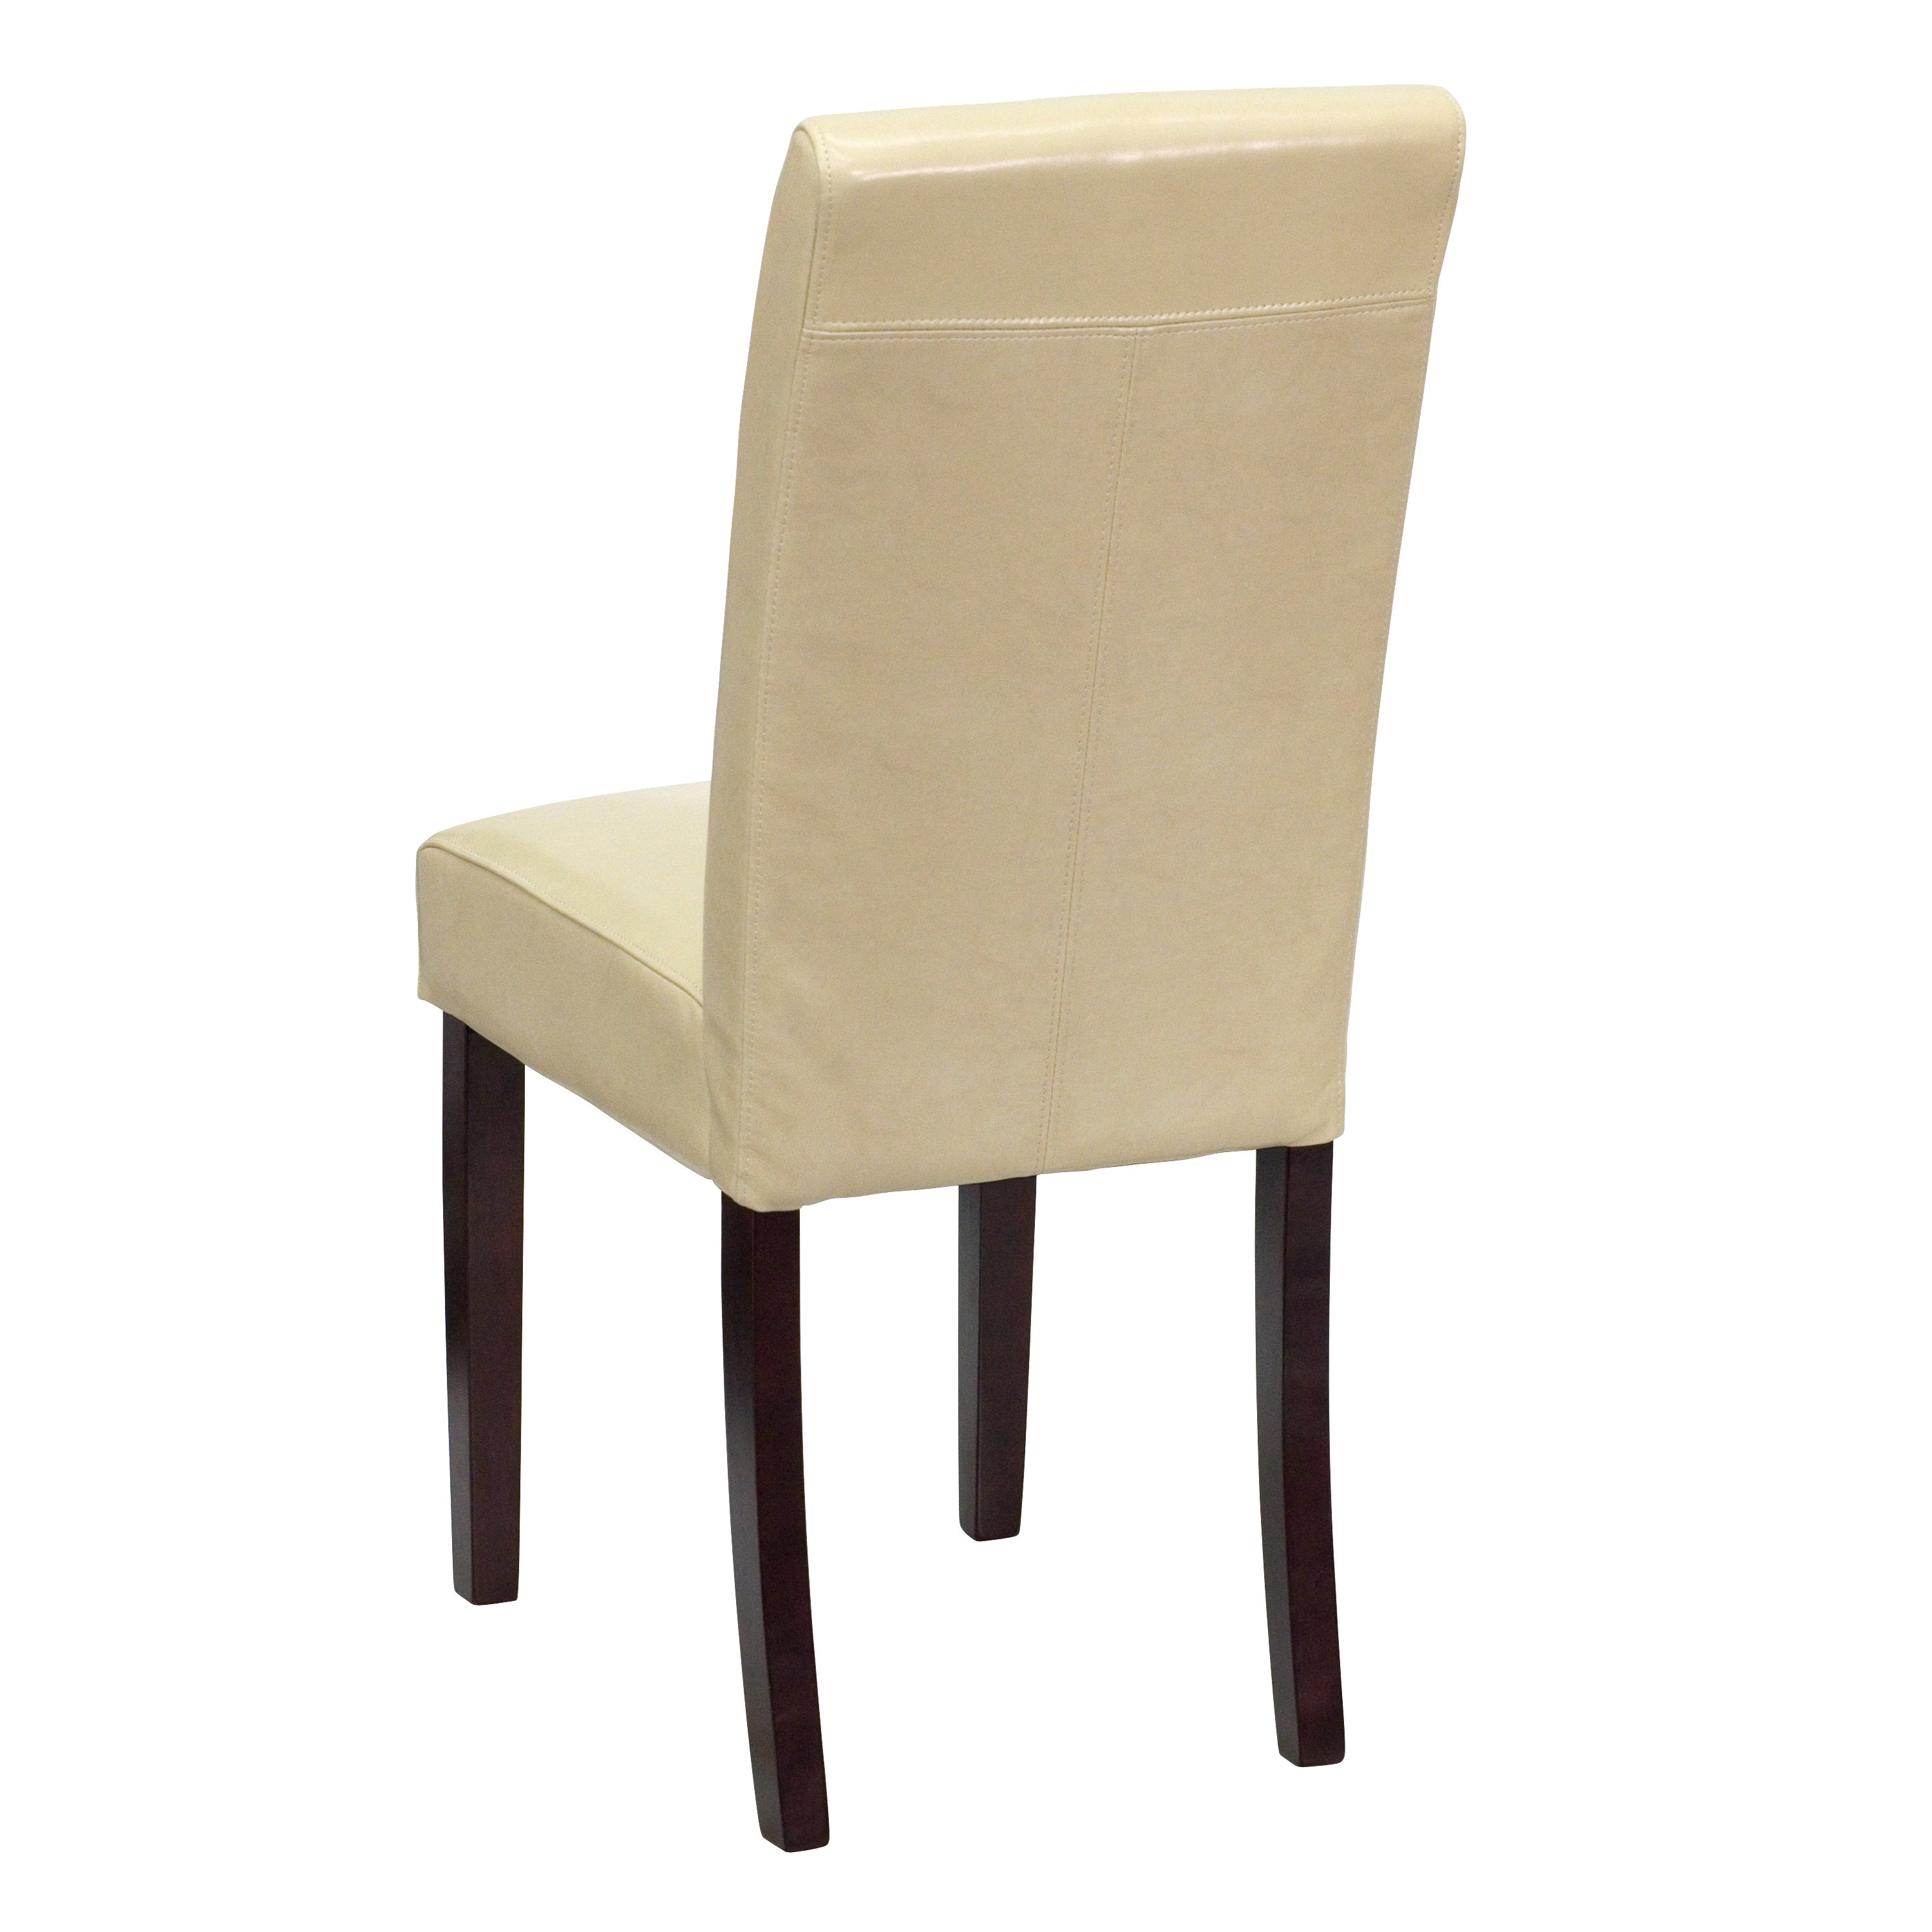 Royale Ivory Leather Upholstered Parson Chairs Free Shipping Today 10343501